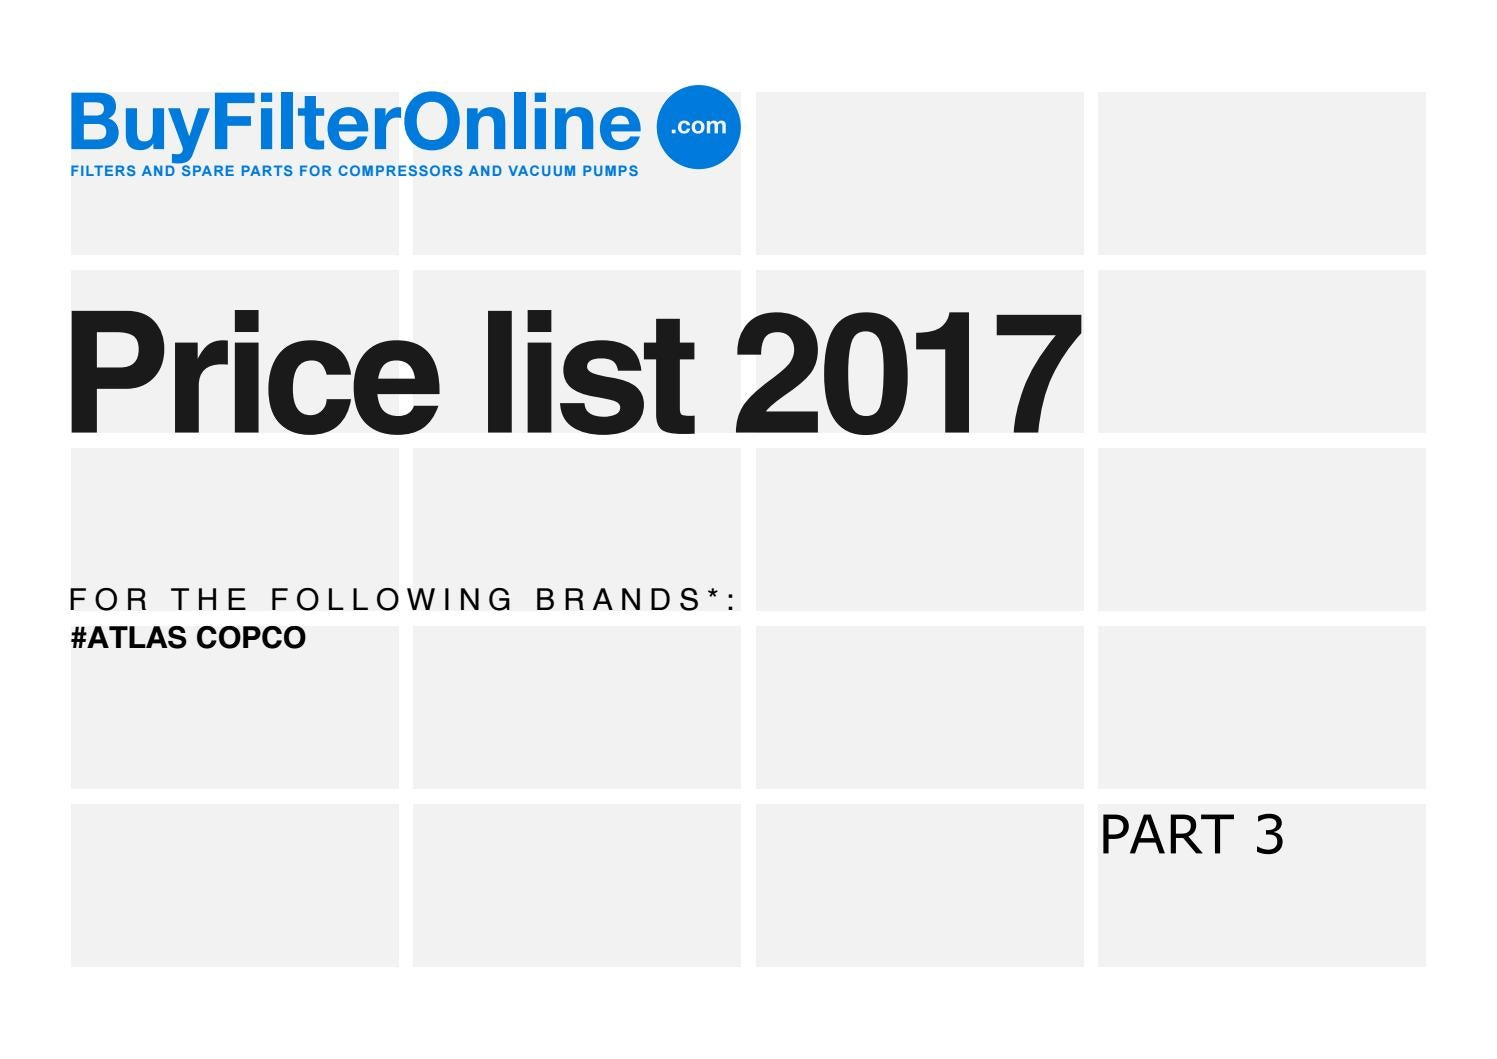 """BuyFilterOnline.com - Filters for compressors - Price List 2017 - """"ATLAS  COPCO"""" PART 3 by oilservice - issuu"""